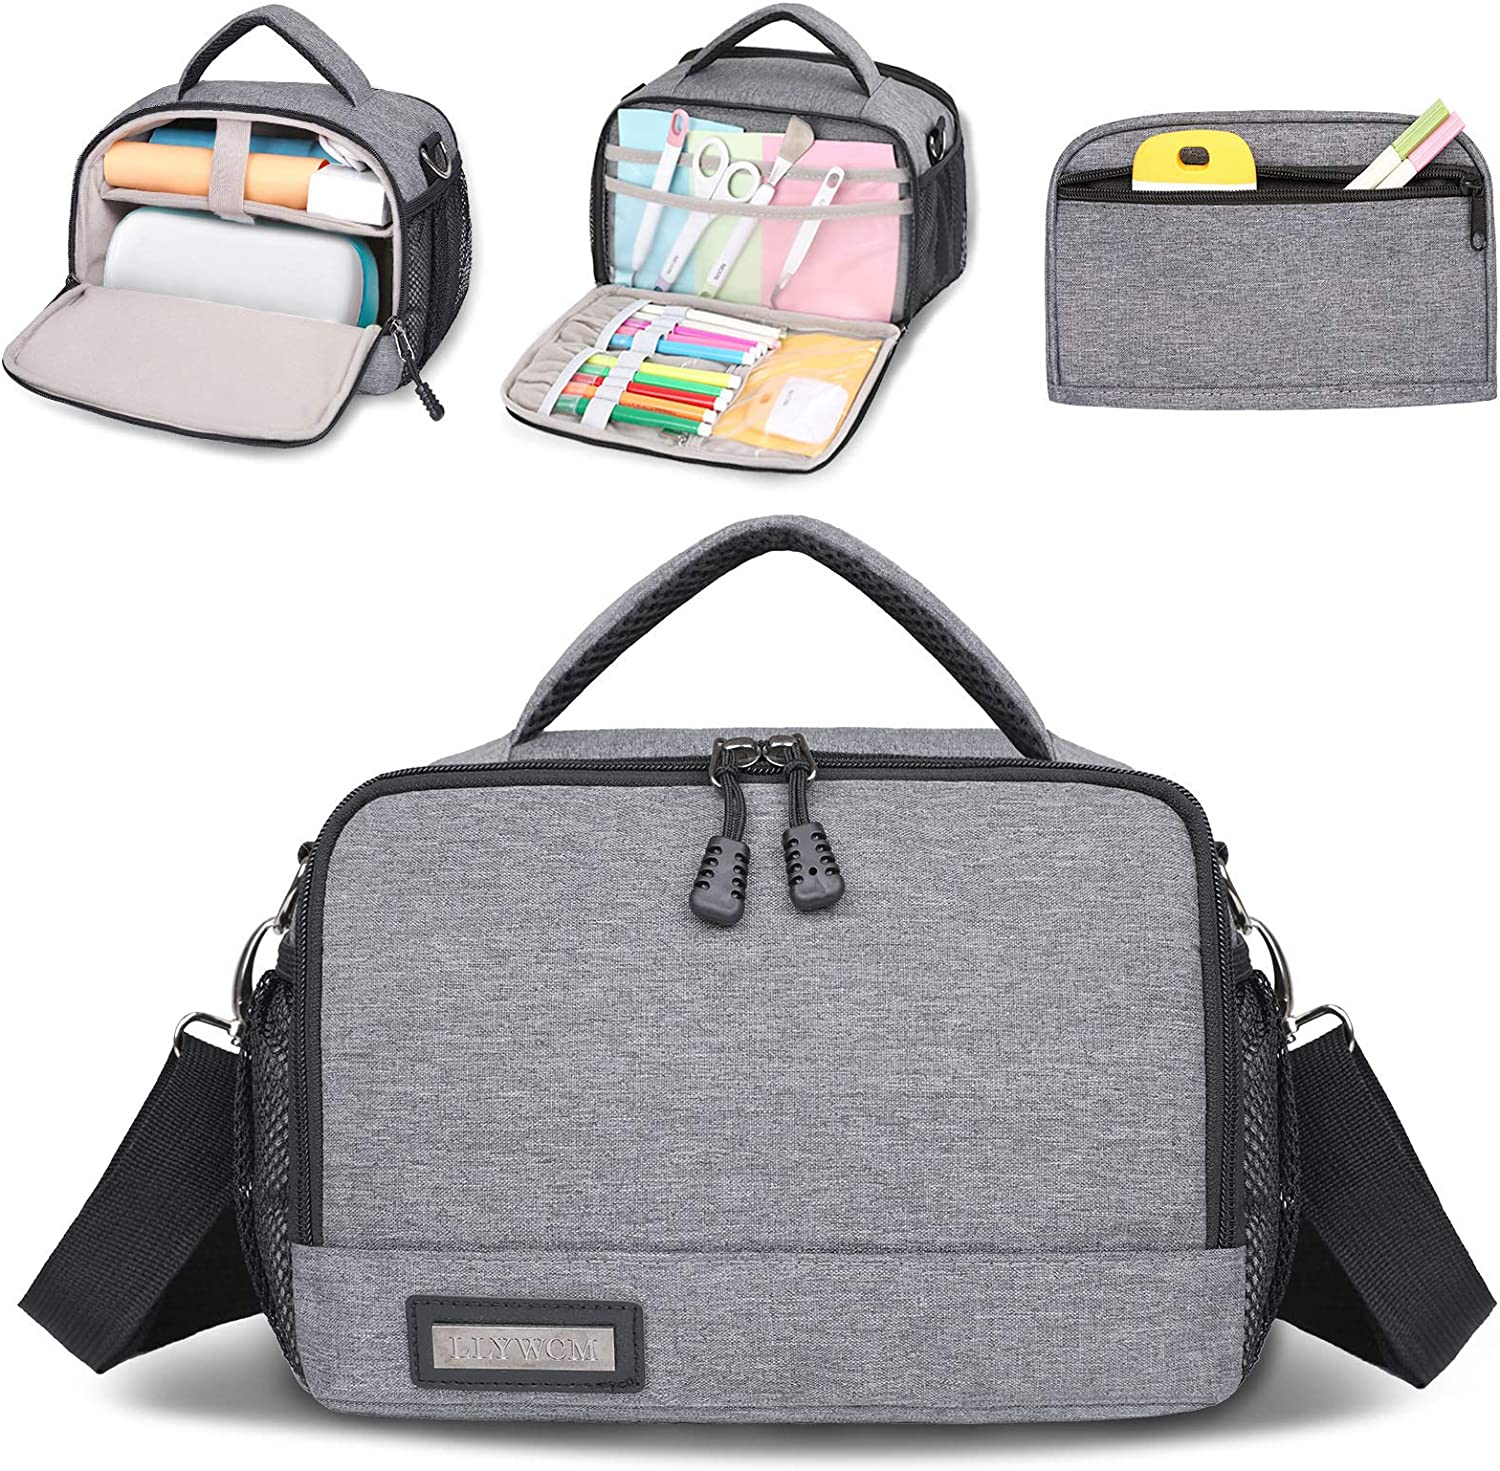 Bag for Cricut Joy and Tool Set with Accessories Storage Section Portable Carrying Case for Cricut Joy Large Capacity Storage Bag Pouch for Cricut Joy